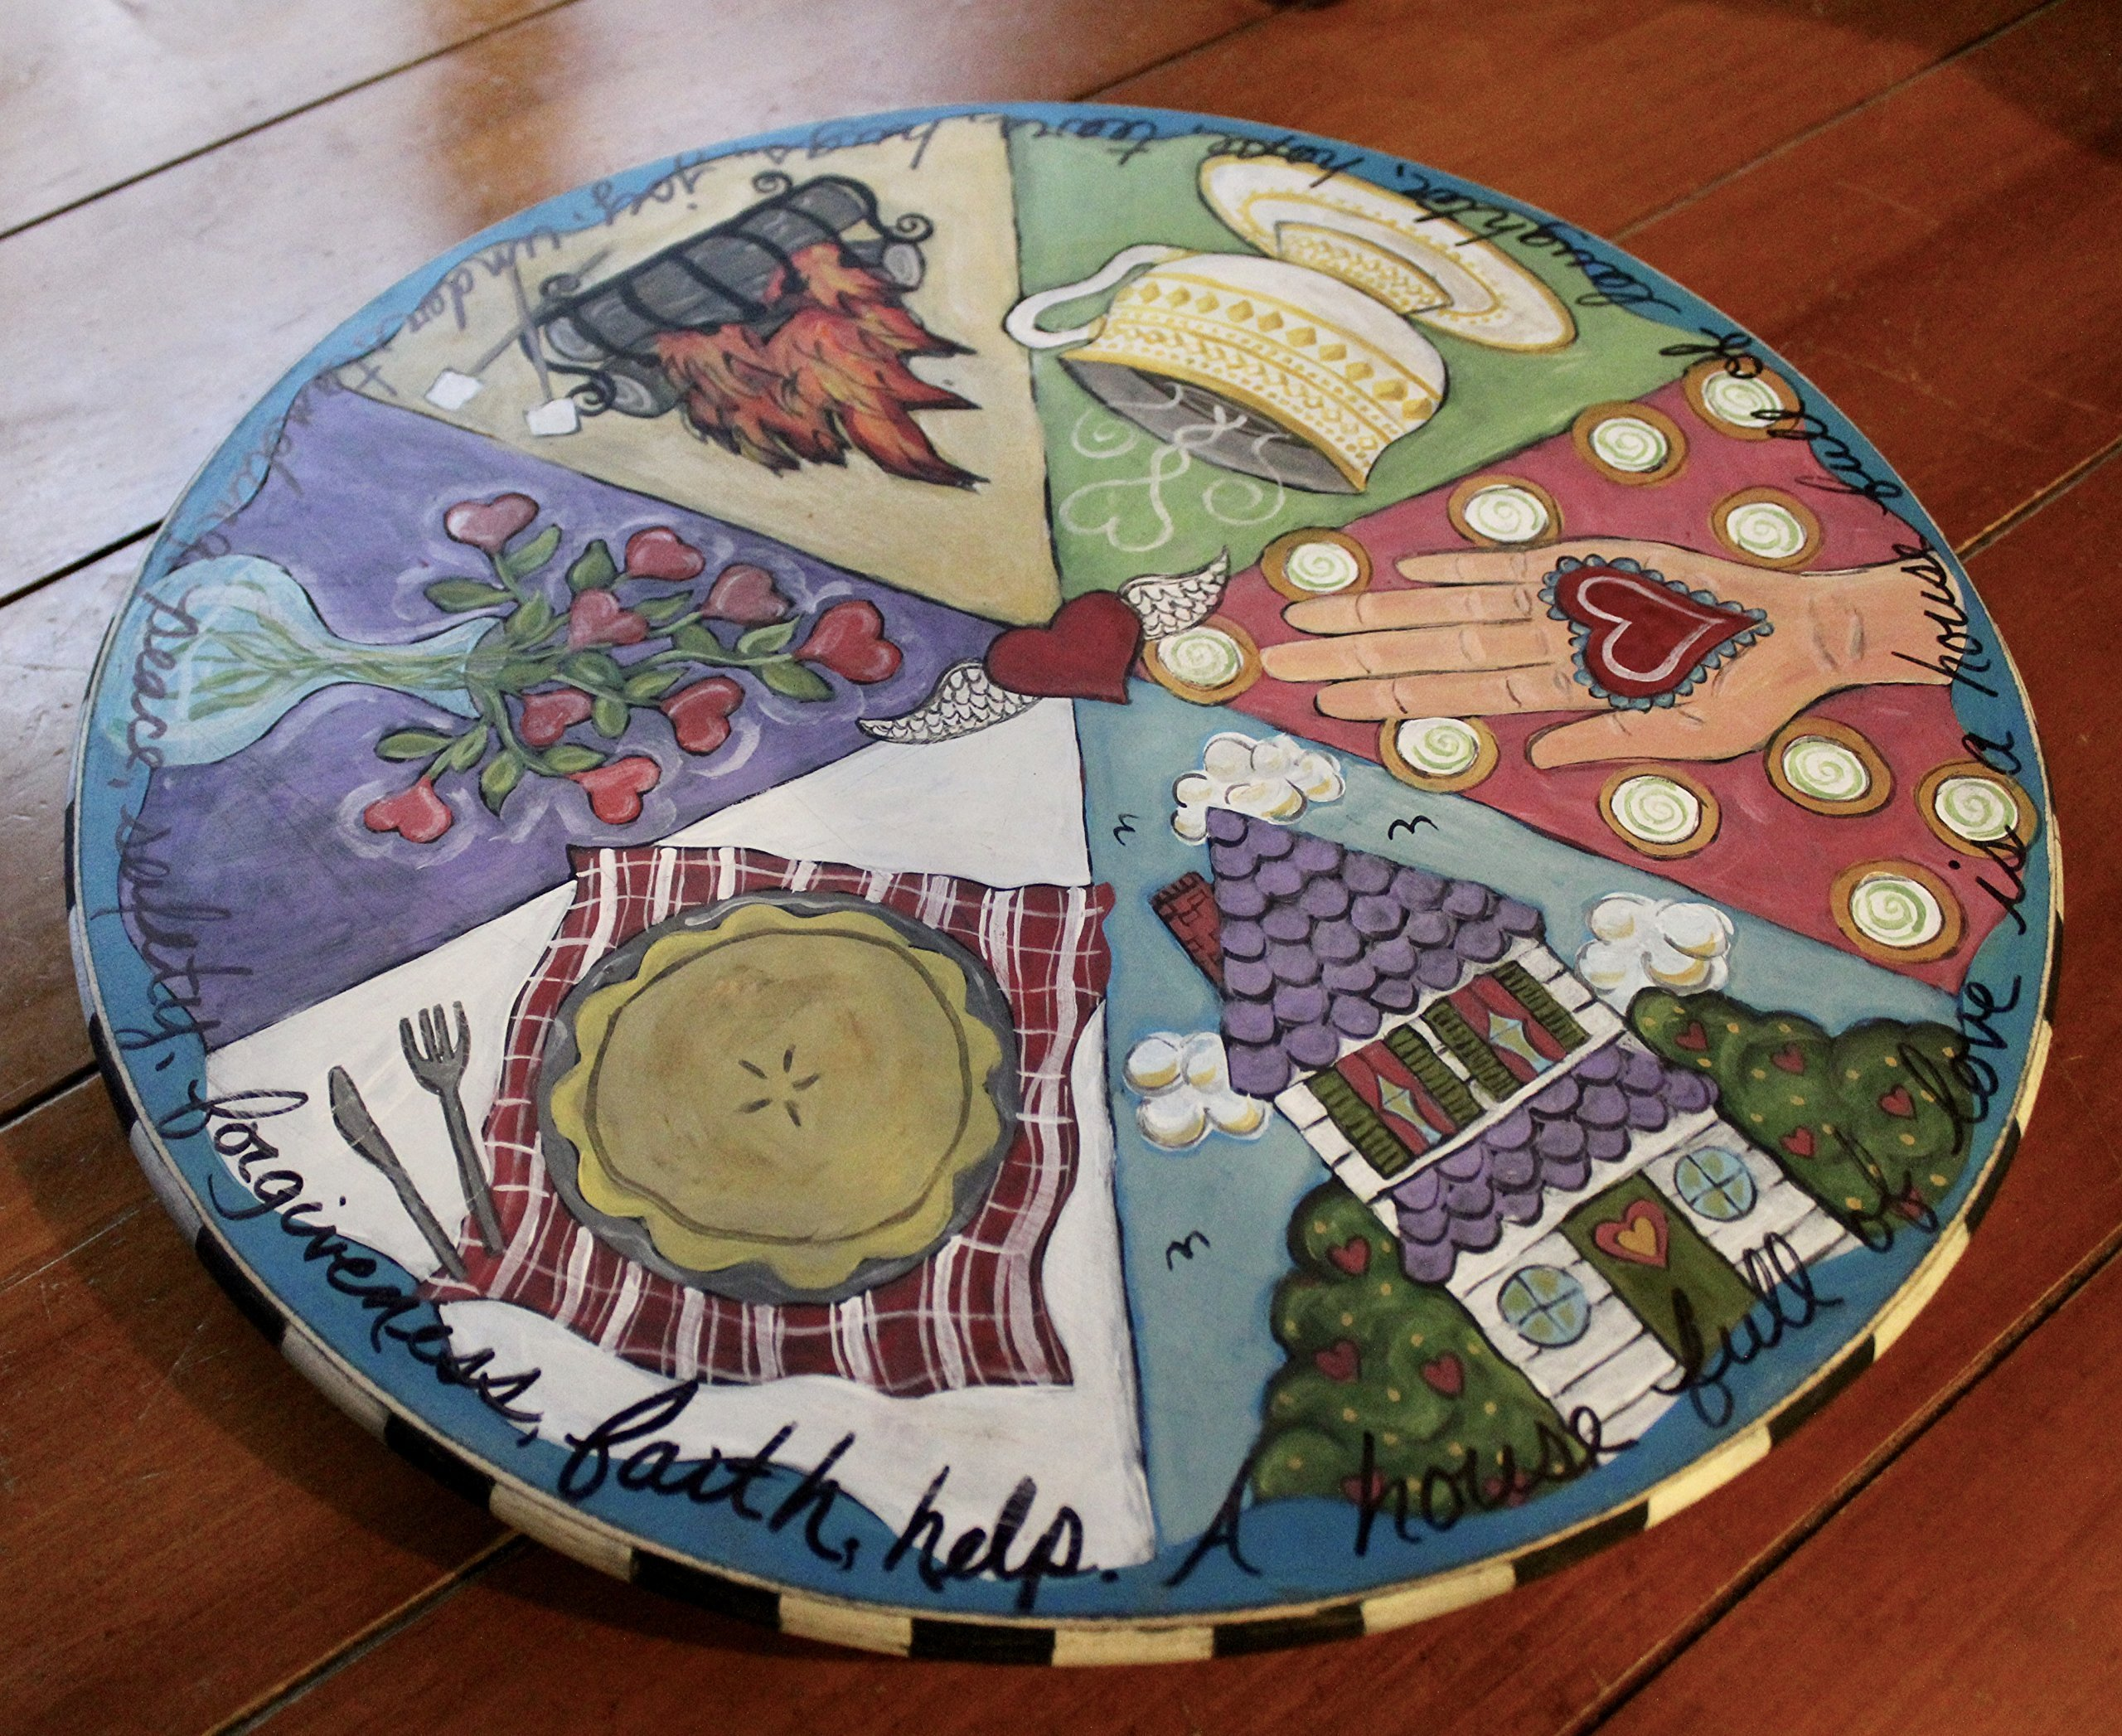 'A House Full of Love' Handpainted Wooden Lazy Susan by NC Folk Artist, Kristen Feighery by The Art of Kristen Feighery (Image #2)